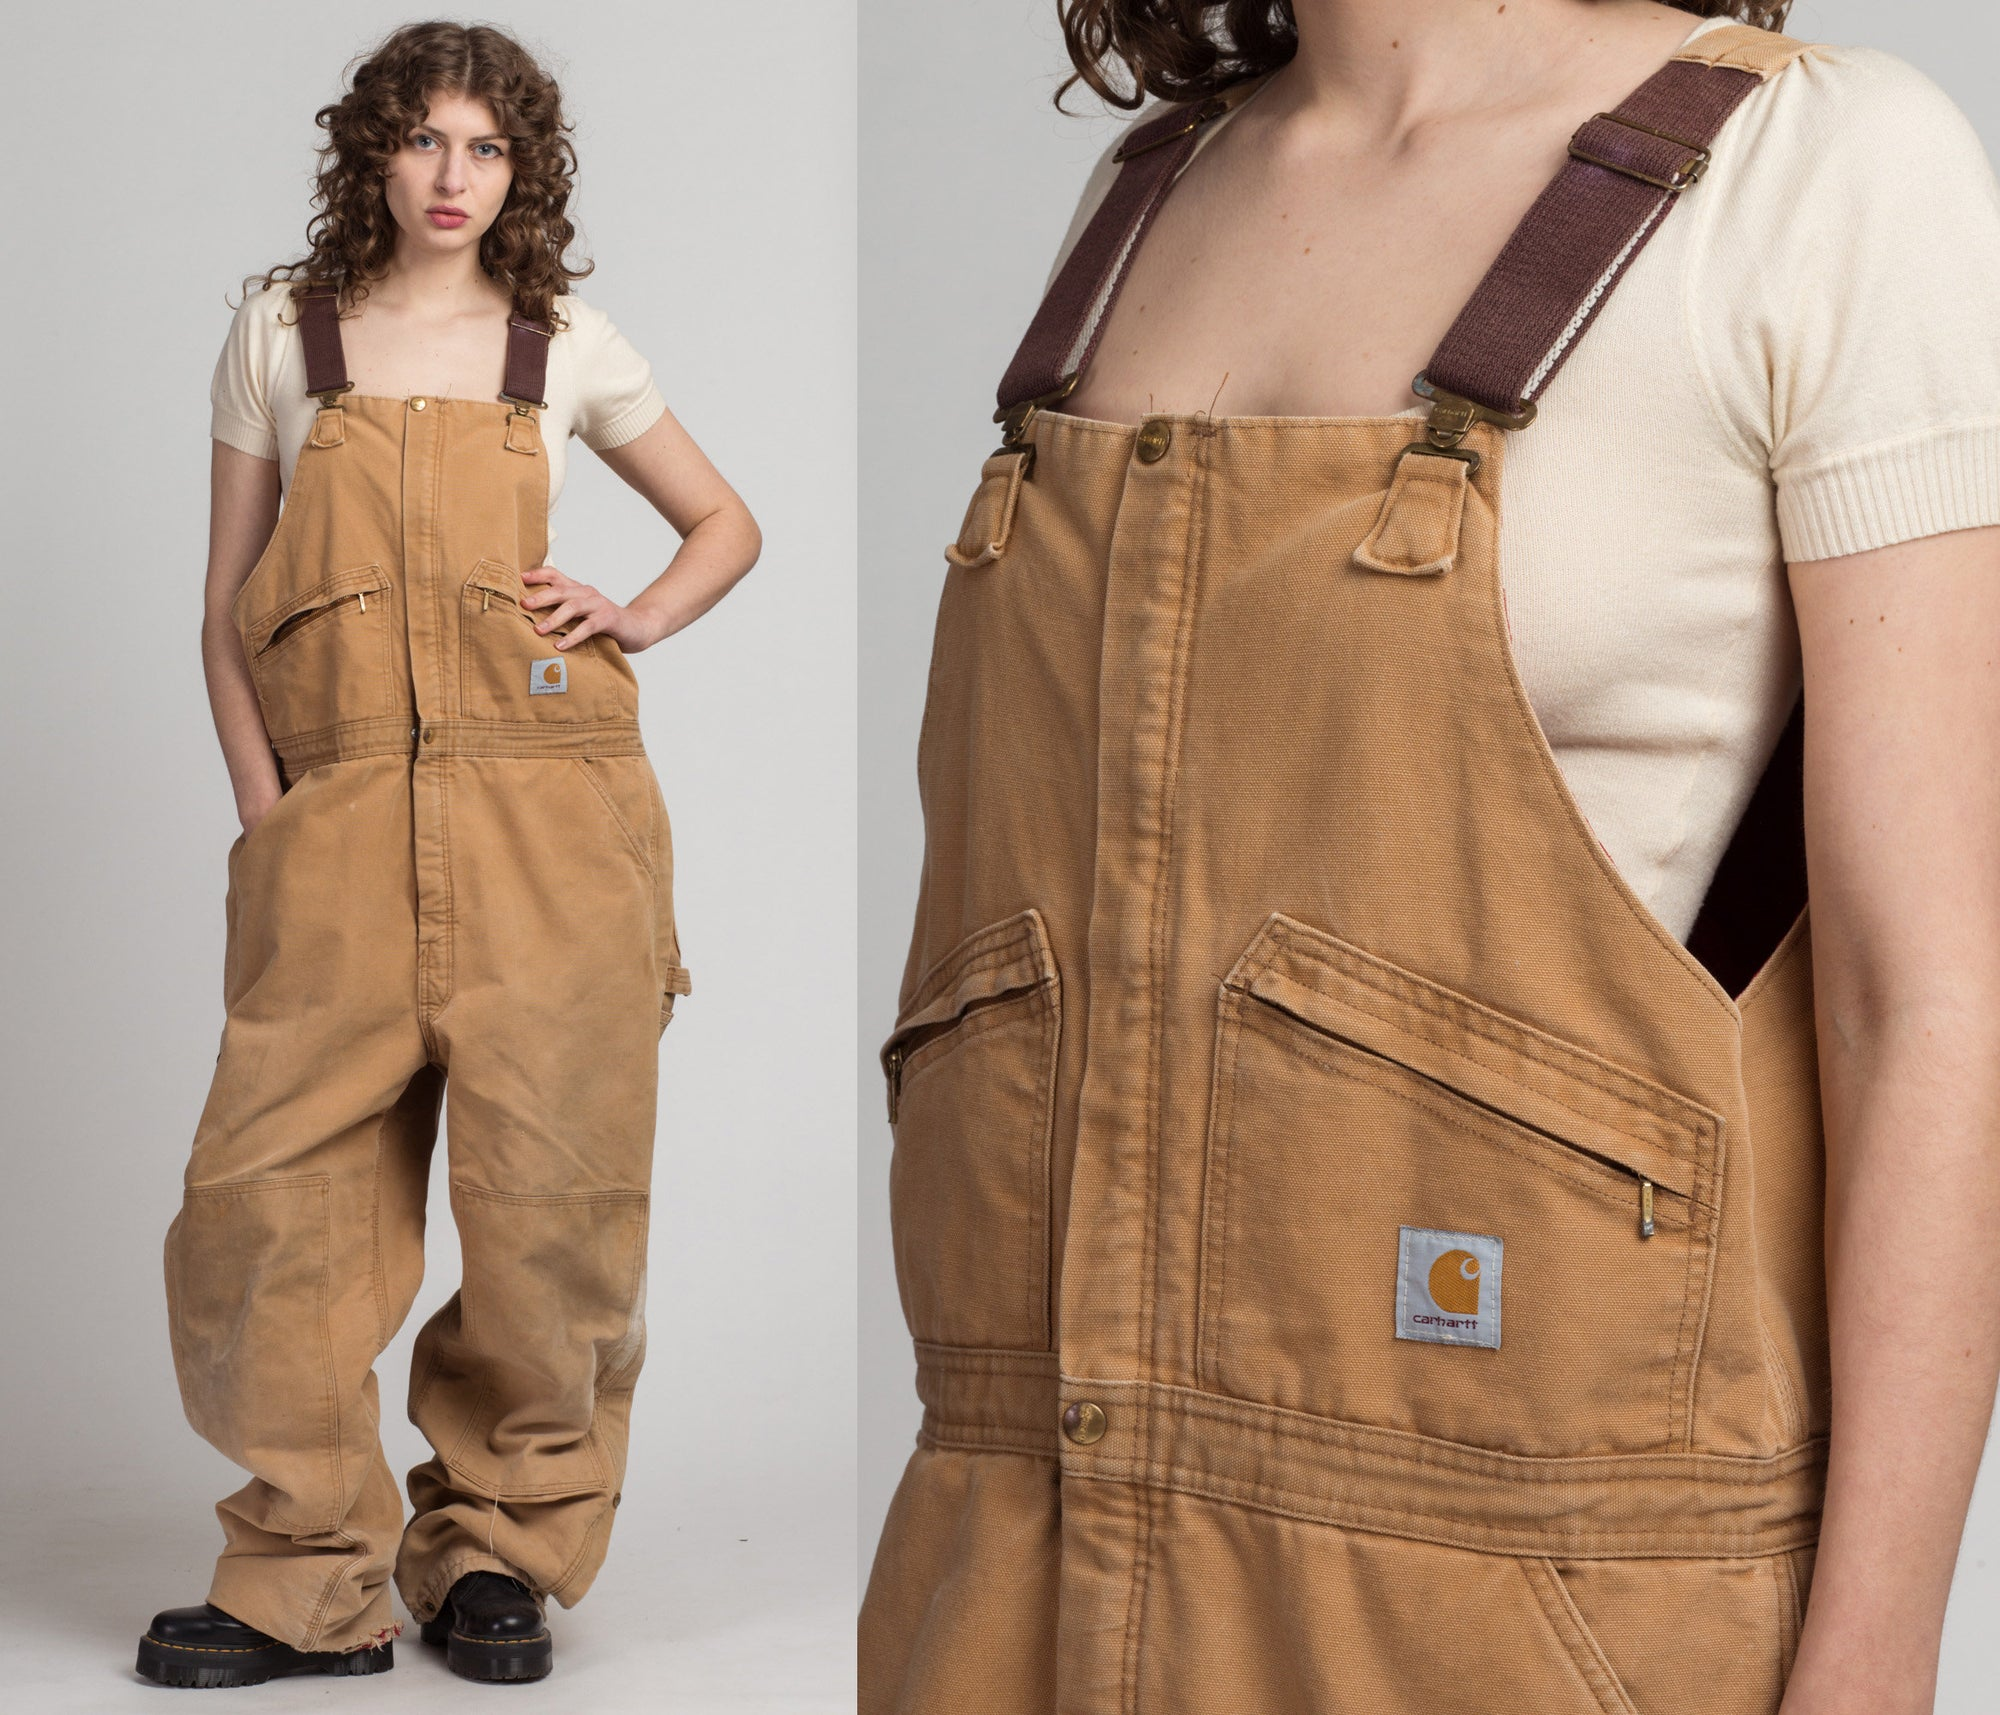 80s 90s Tan Carhartt Insulated Lined Overalls - 42x34, Men's XL | Vintage Made In USA Distressed Workwear Jumpsuit